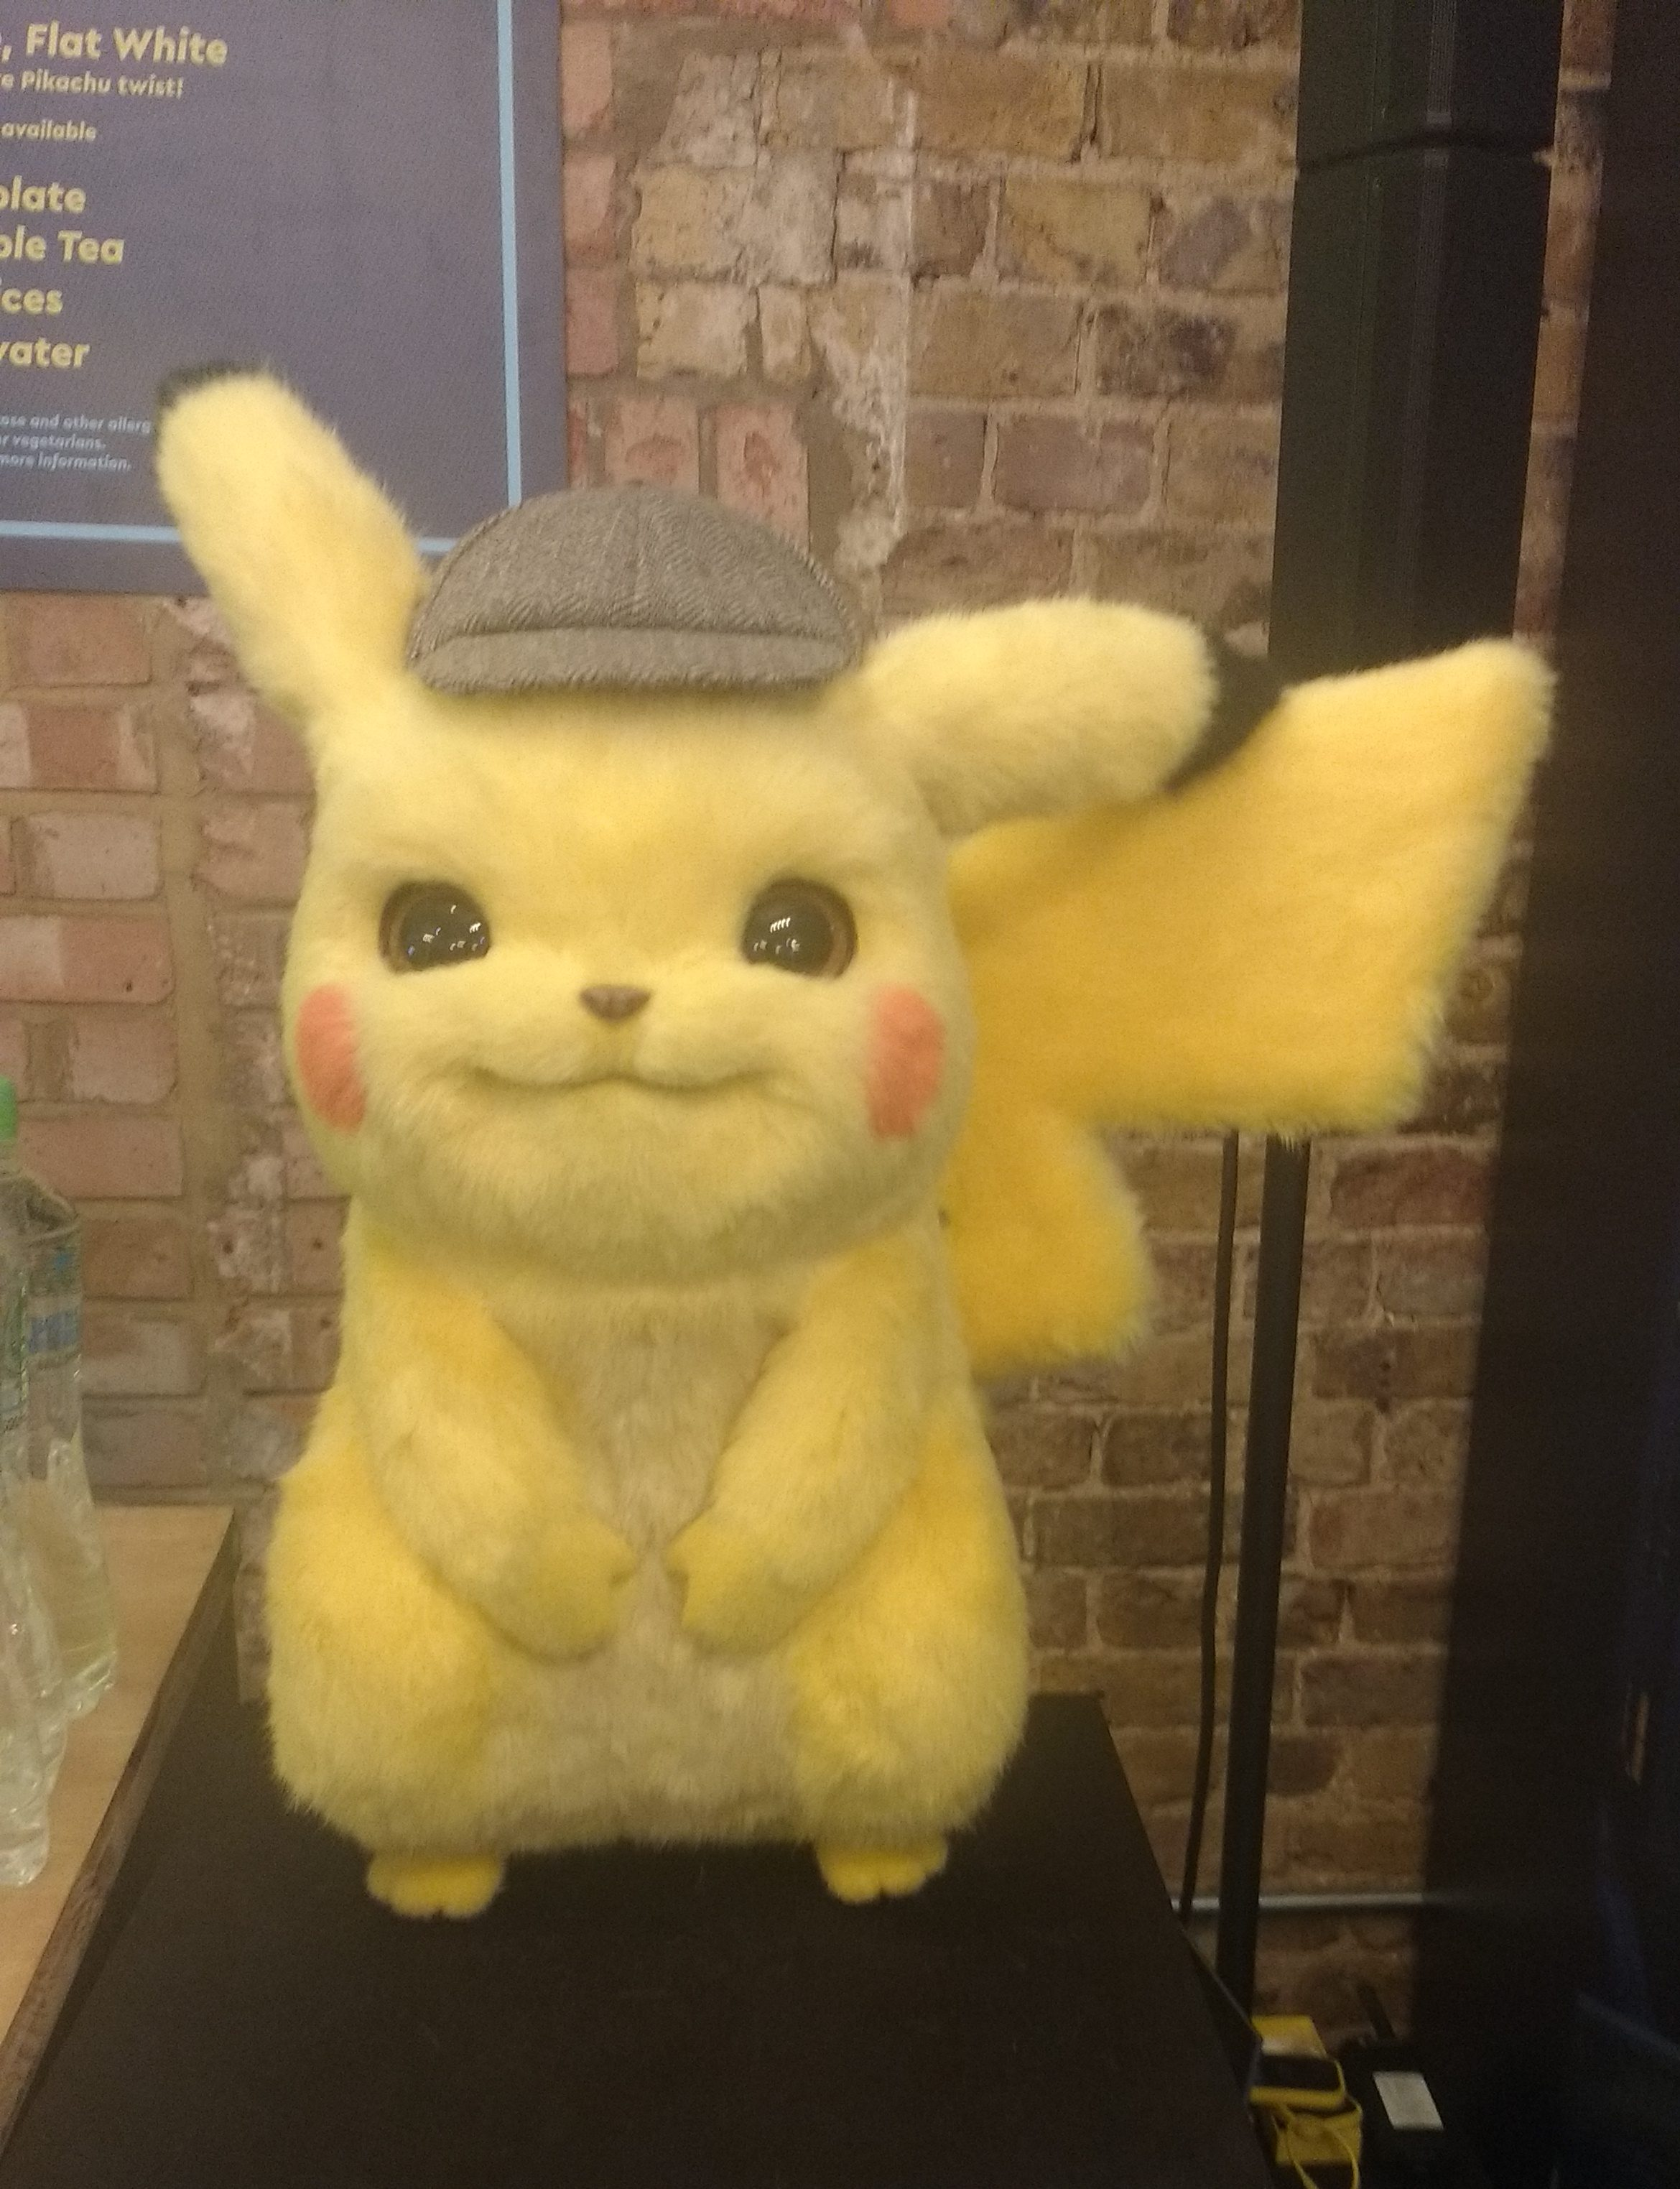 Detective Pikachu Pop Up All The London Things